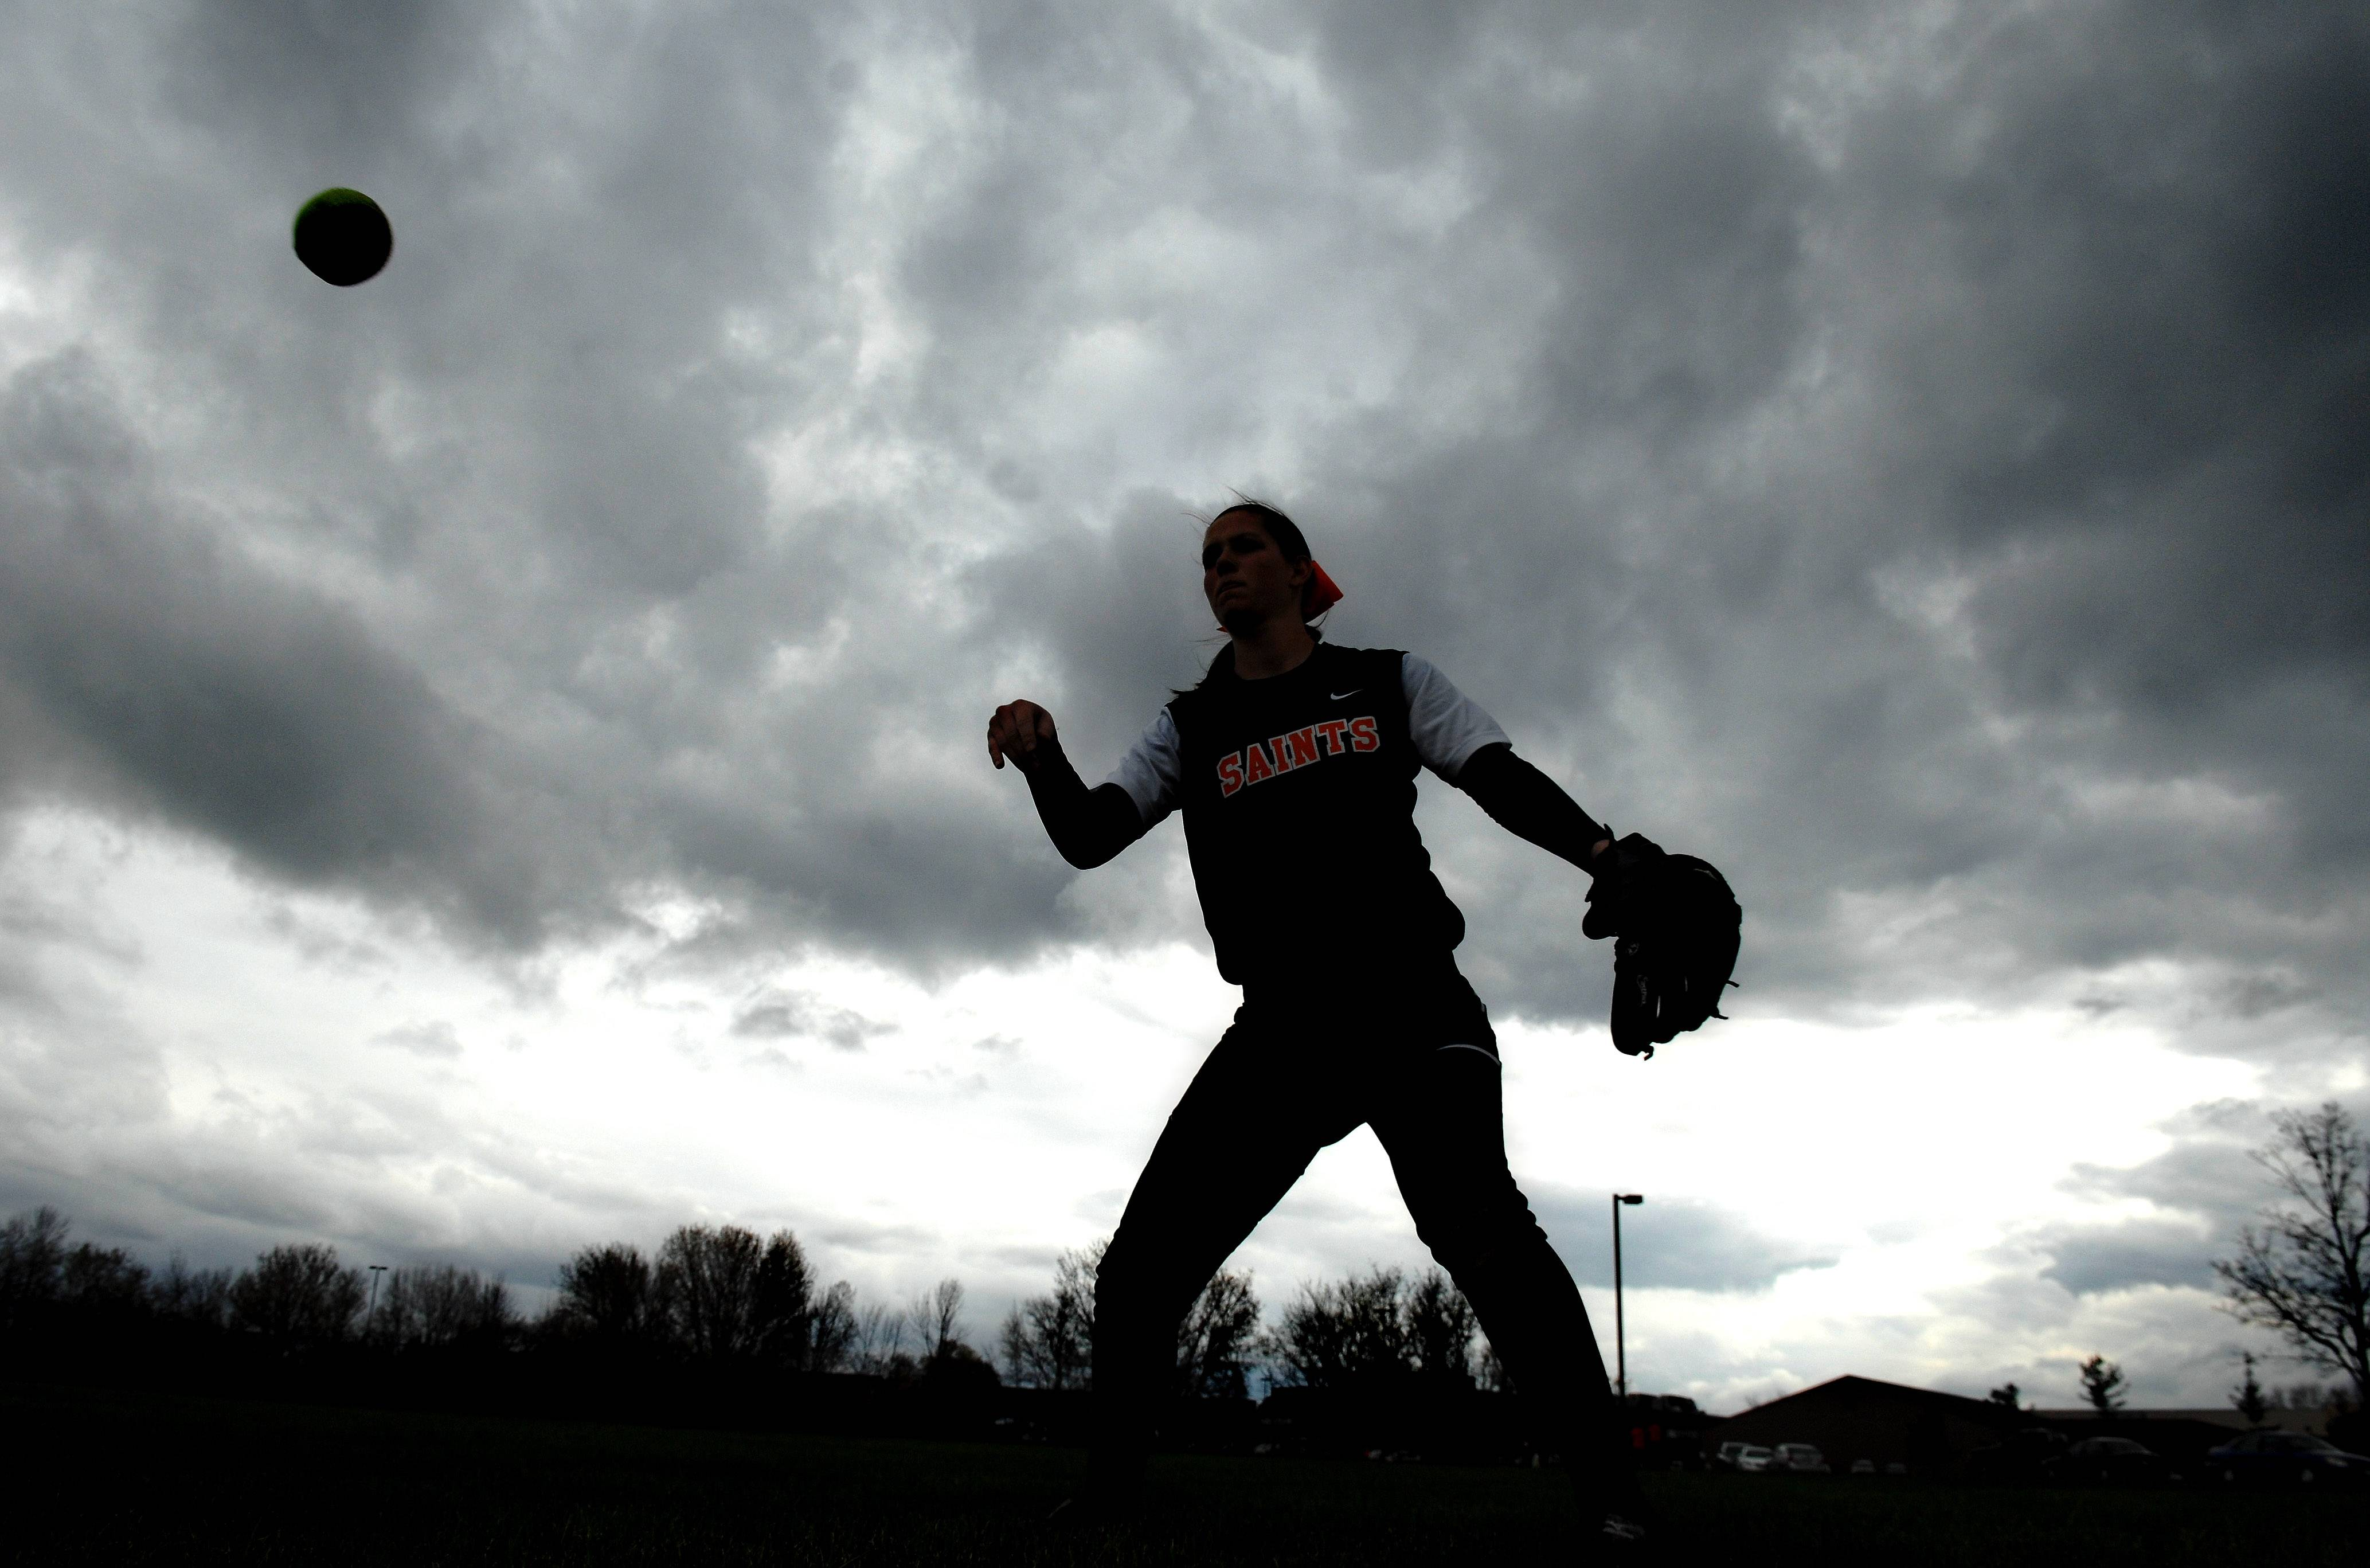 St. Charles East's Kelly Rinker warms up as storm clouds roll in before Tuesday's home game against rival St. Charles North.